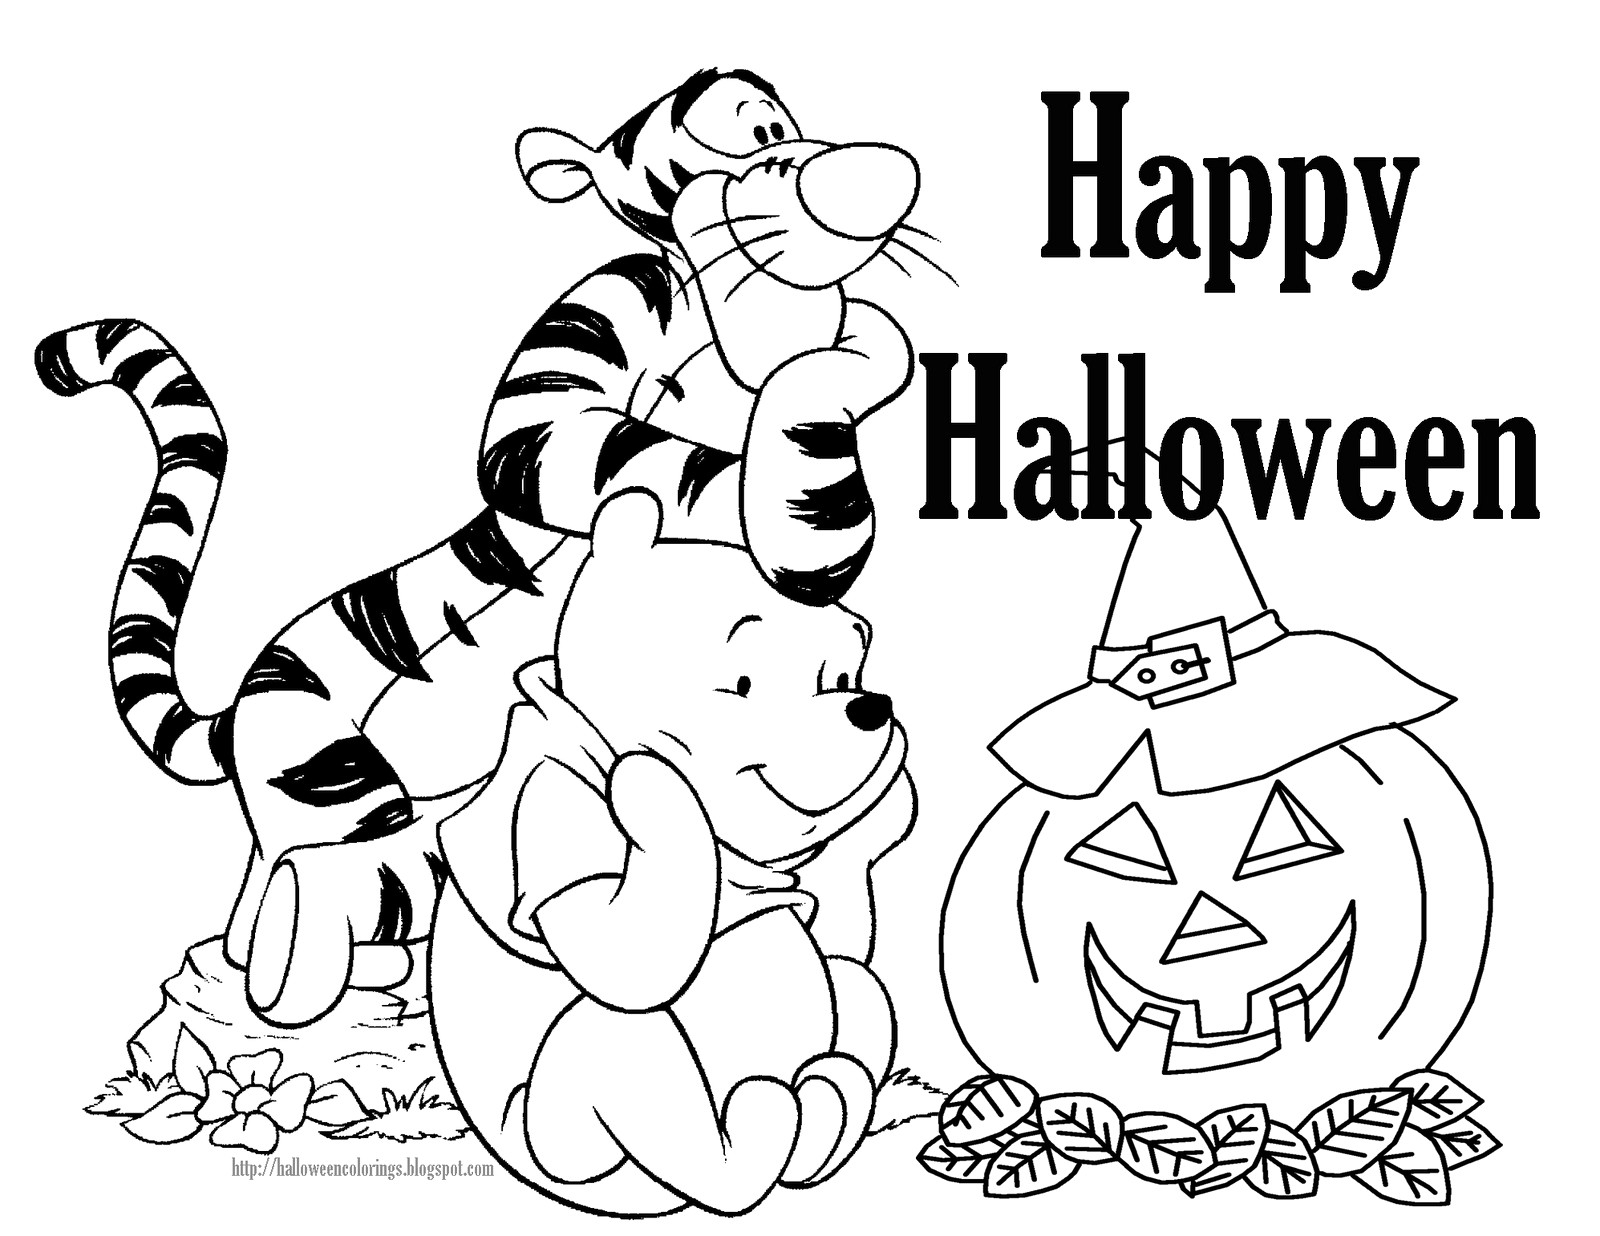 Coloring Ideas : Fun Free Halloween Printables For Kids Printable - Free Printable Halloween Coloring Pages